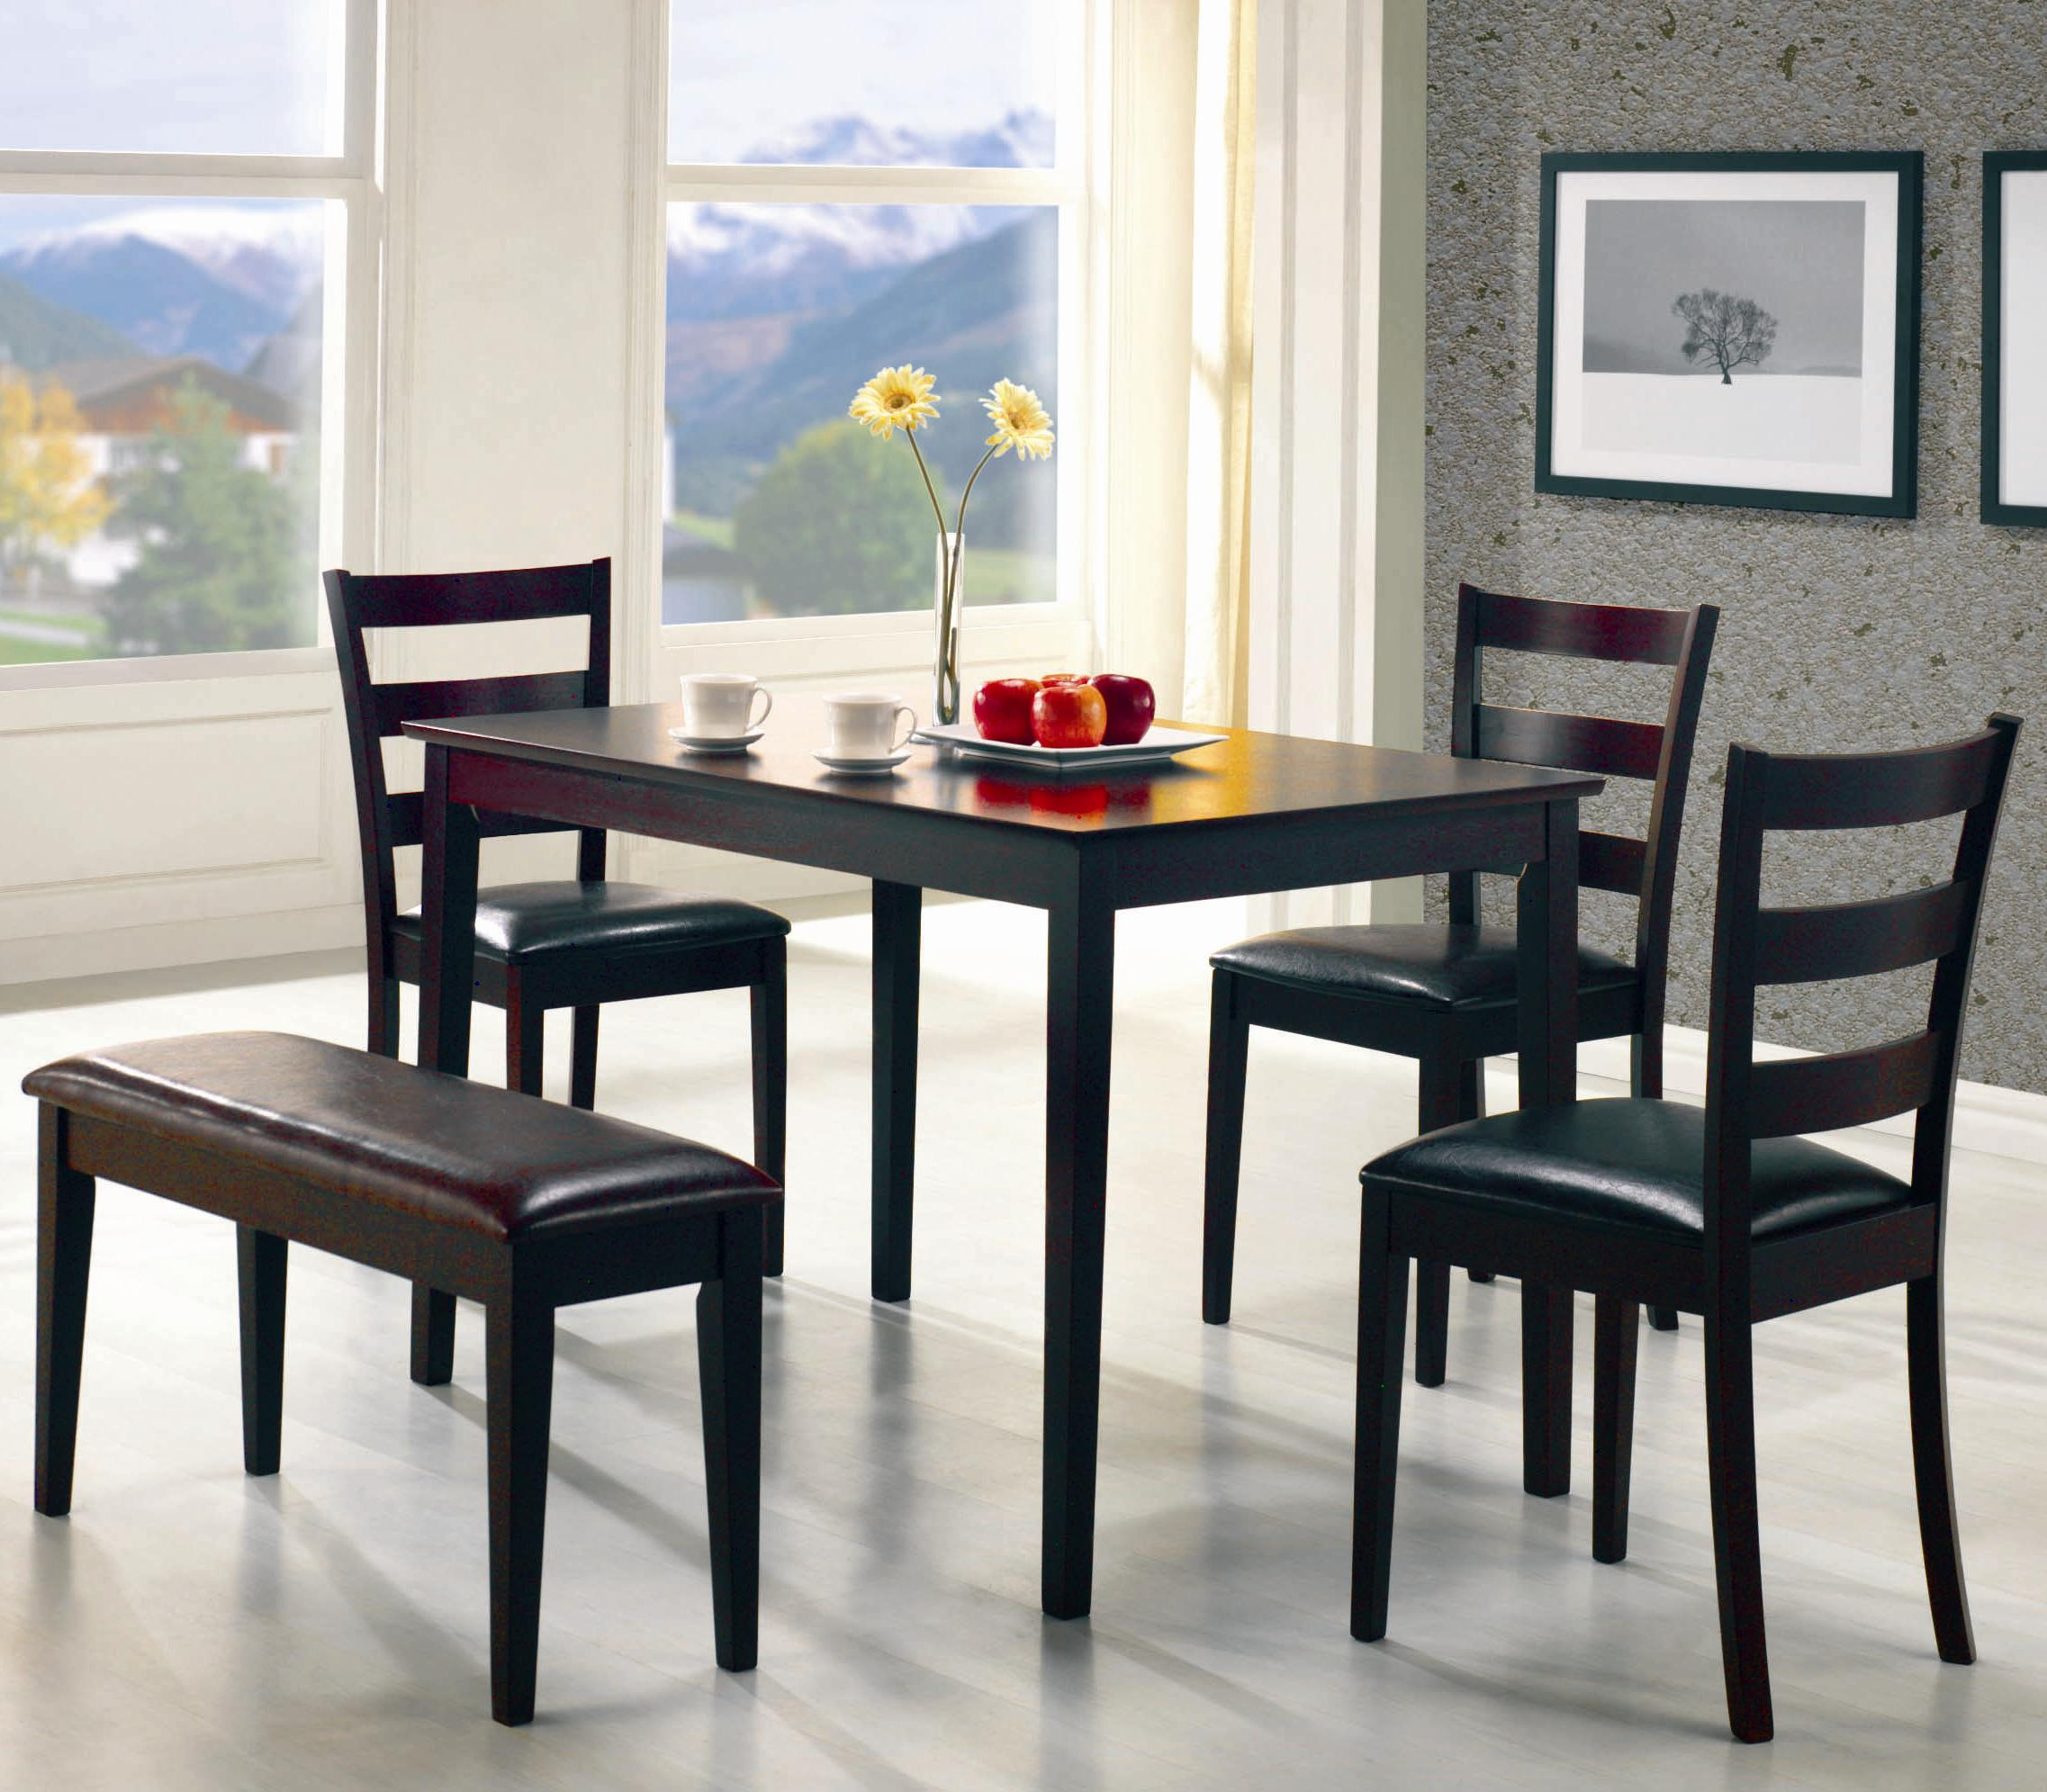 Coaster Taraval 5 Piece Dining Set with Bench Coaster Fine Furniture